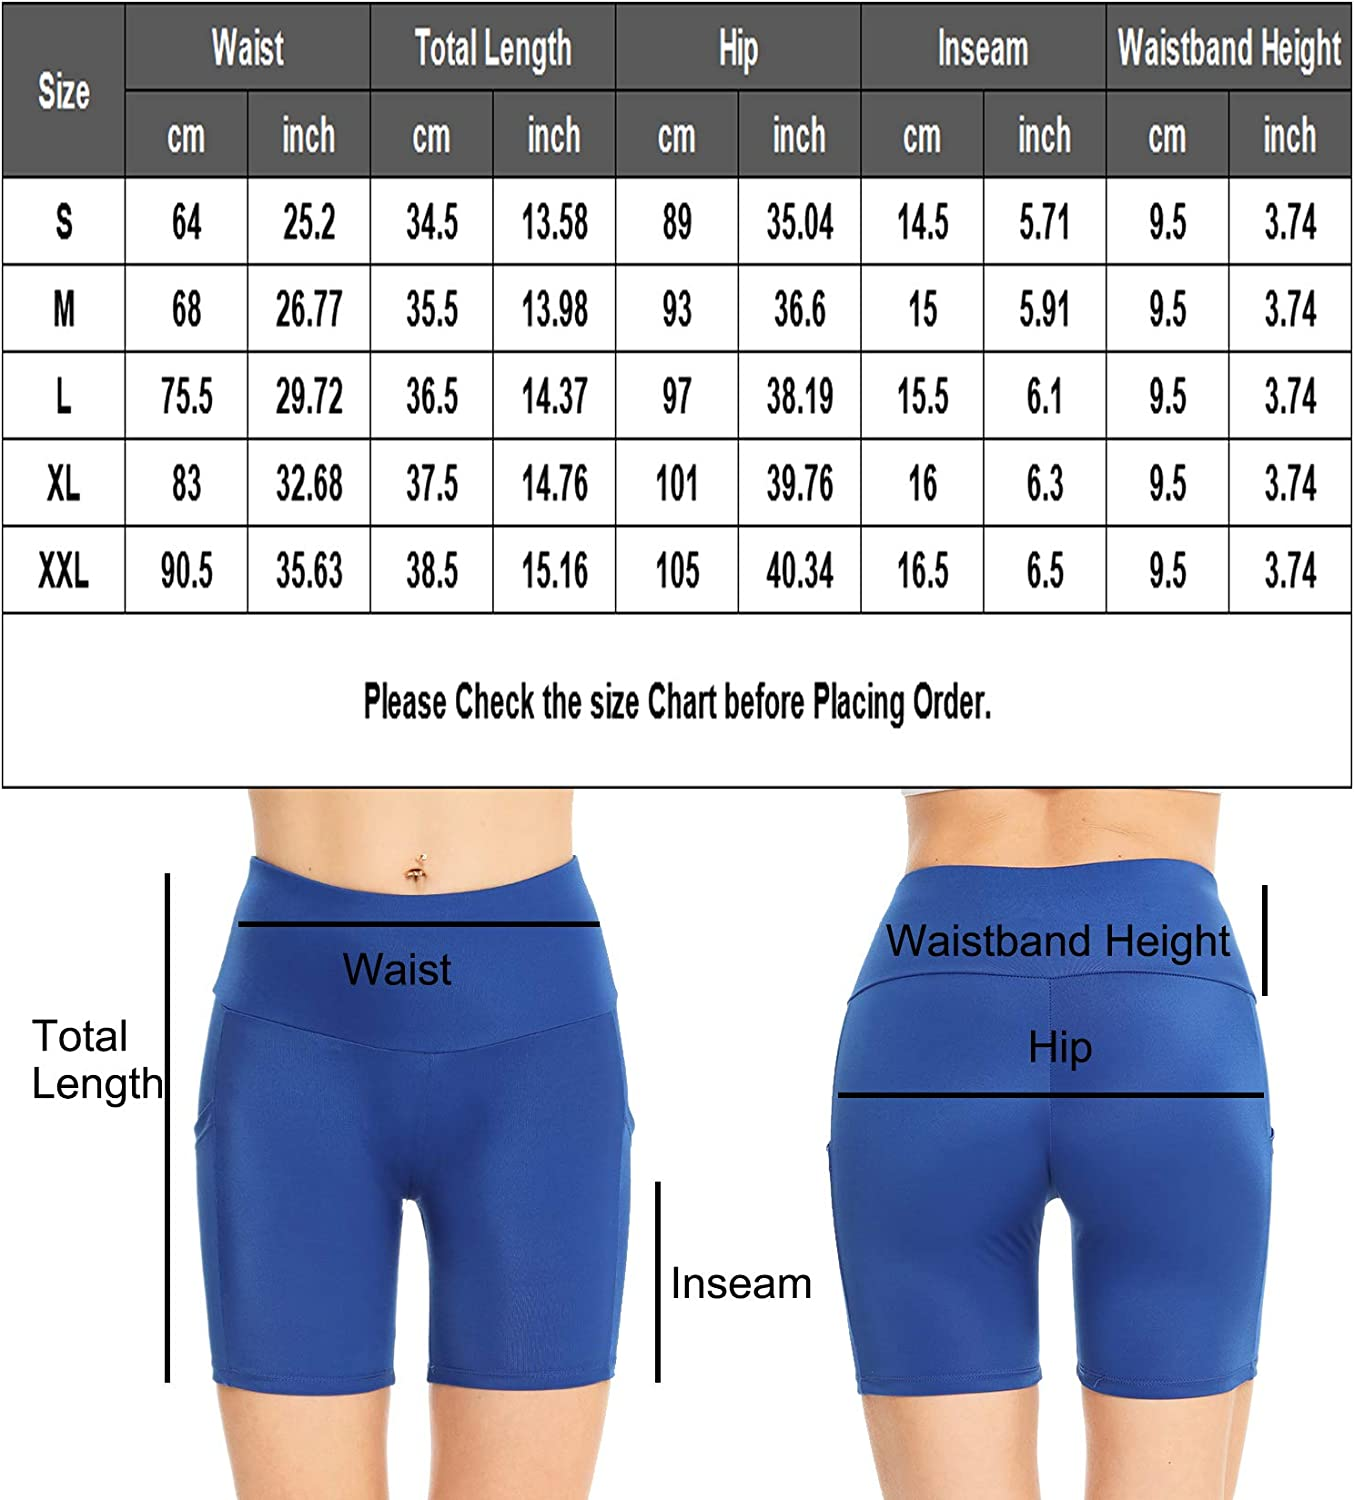 2 Packed SWOMOG Women High Waist Yoga Shorts Workout Biker Shorts Running Compression Exercise Shorts with Pockets